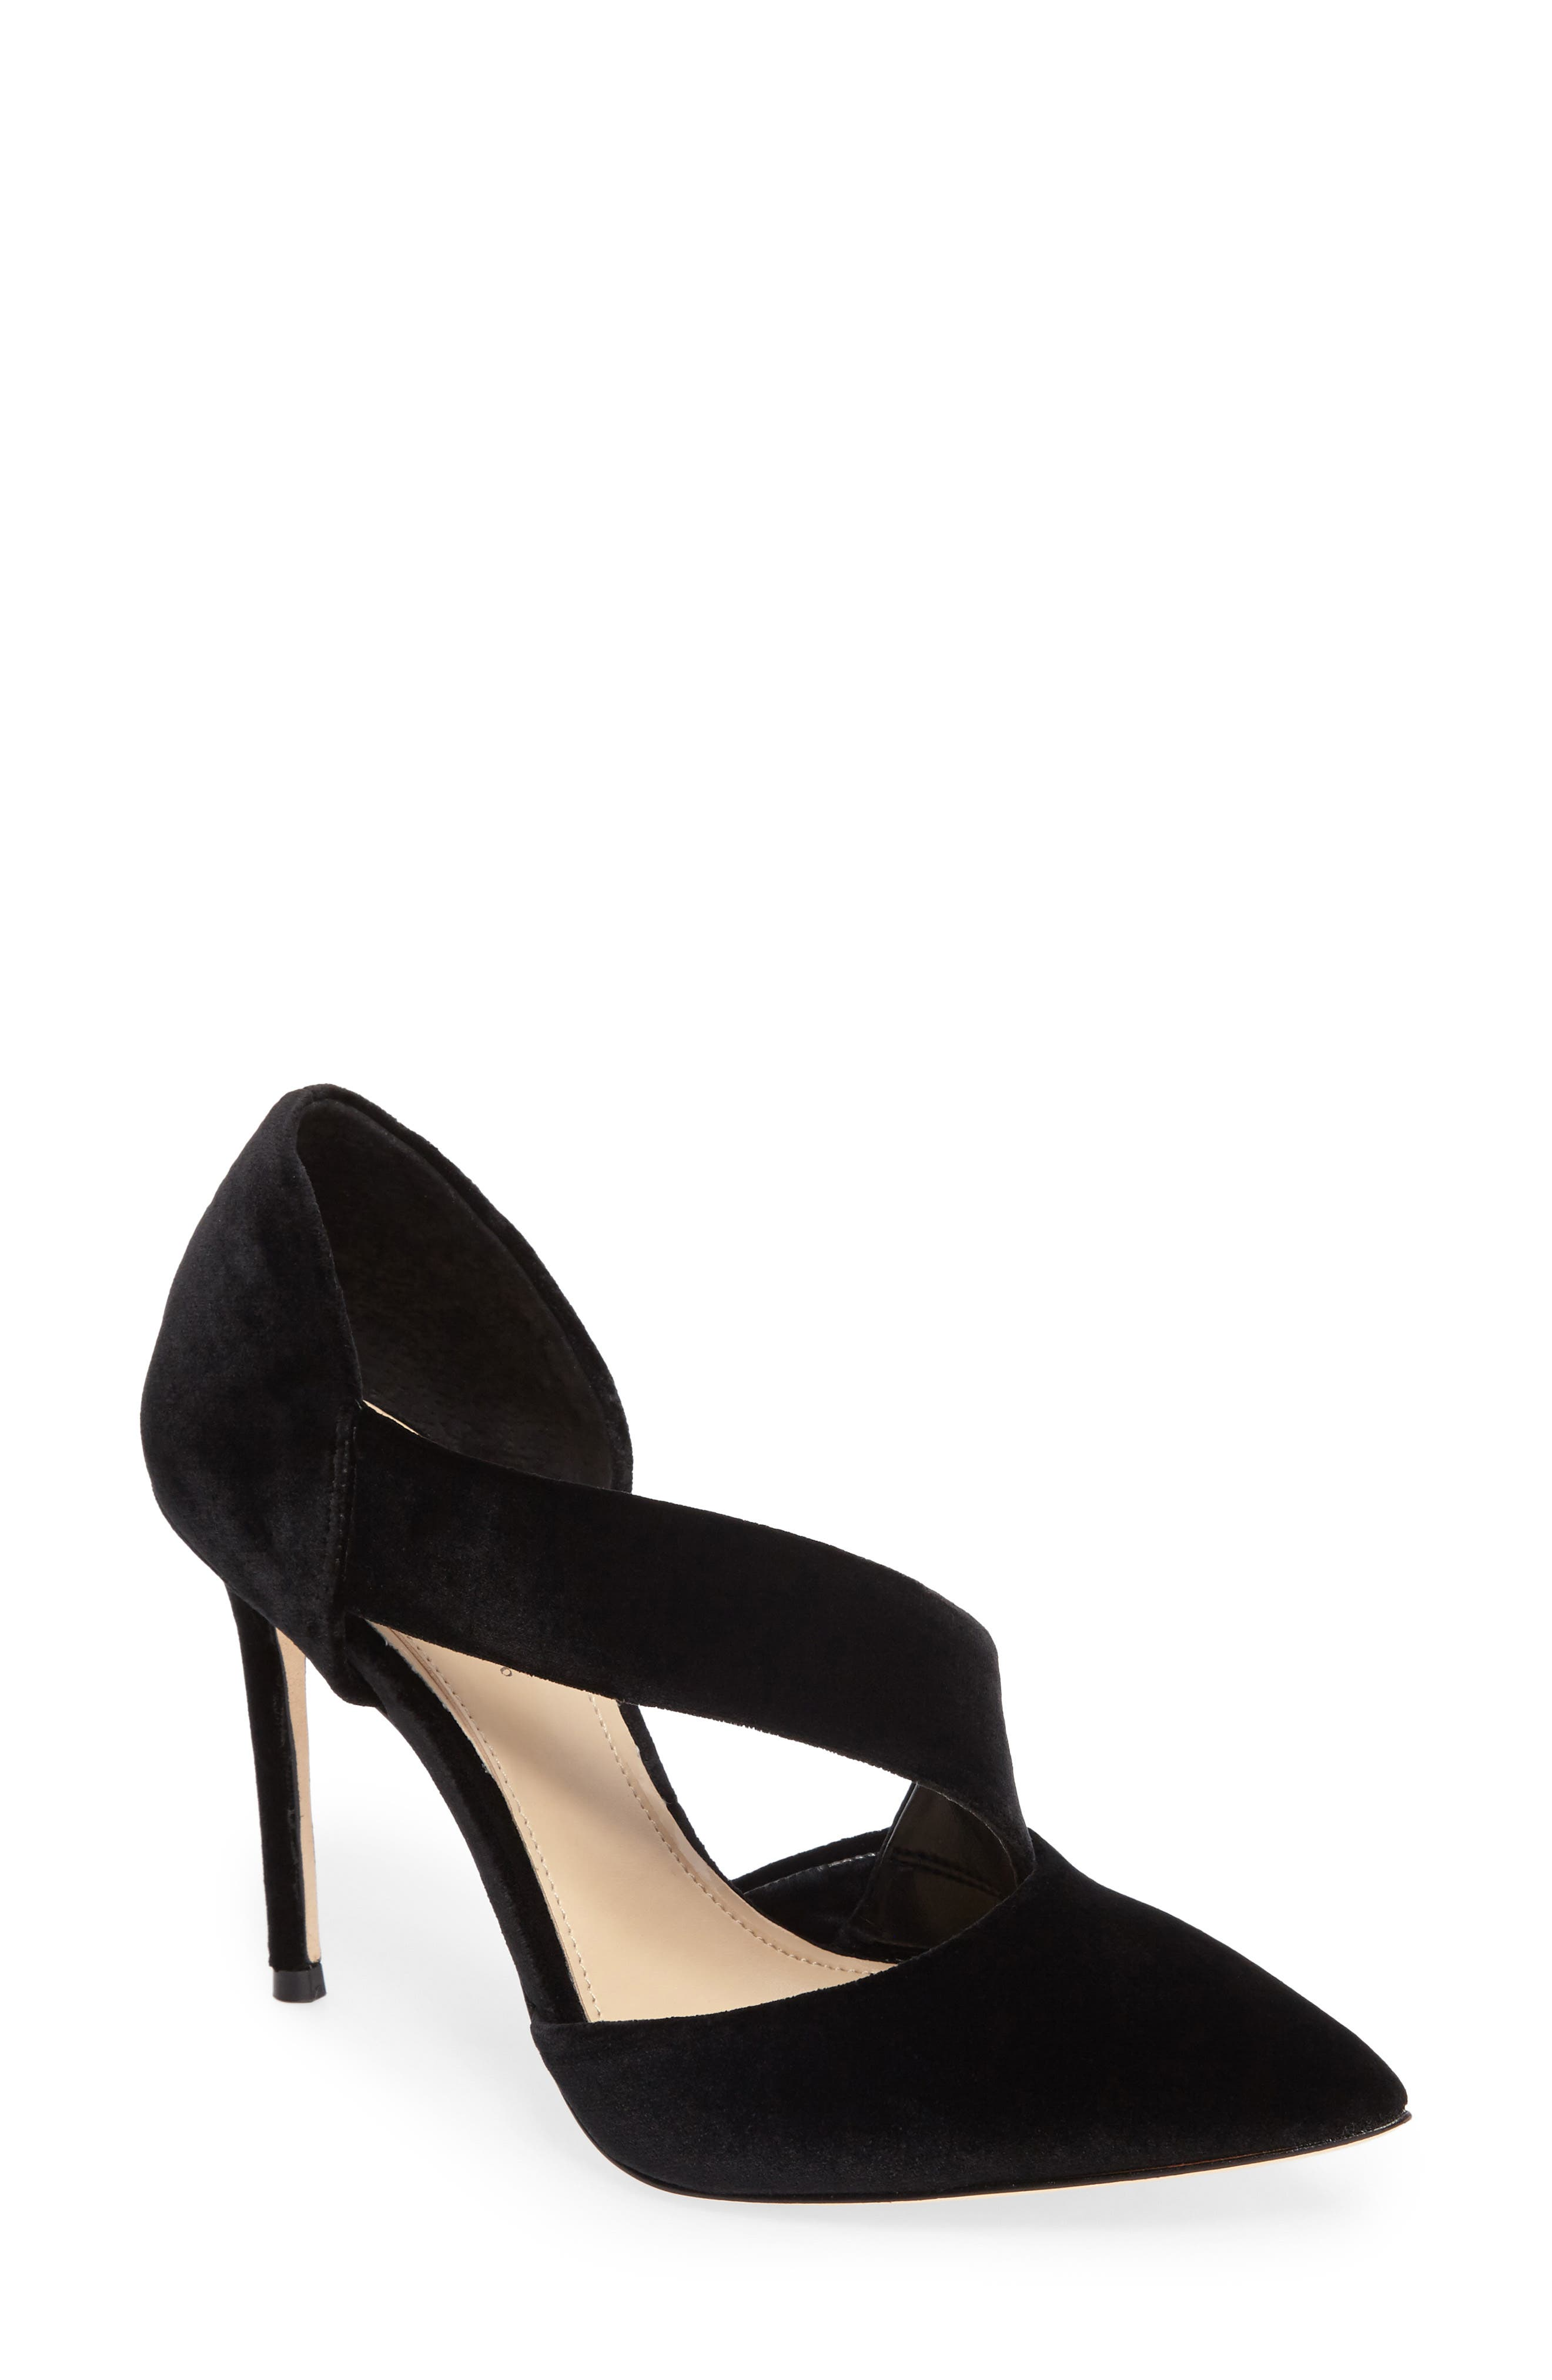 Alternate Image 1 Selected - Imagine by Vince Camuto Oya Asymmetrical Pointy Toe Pump (Women)